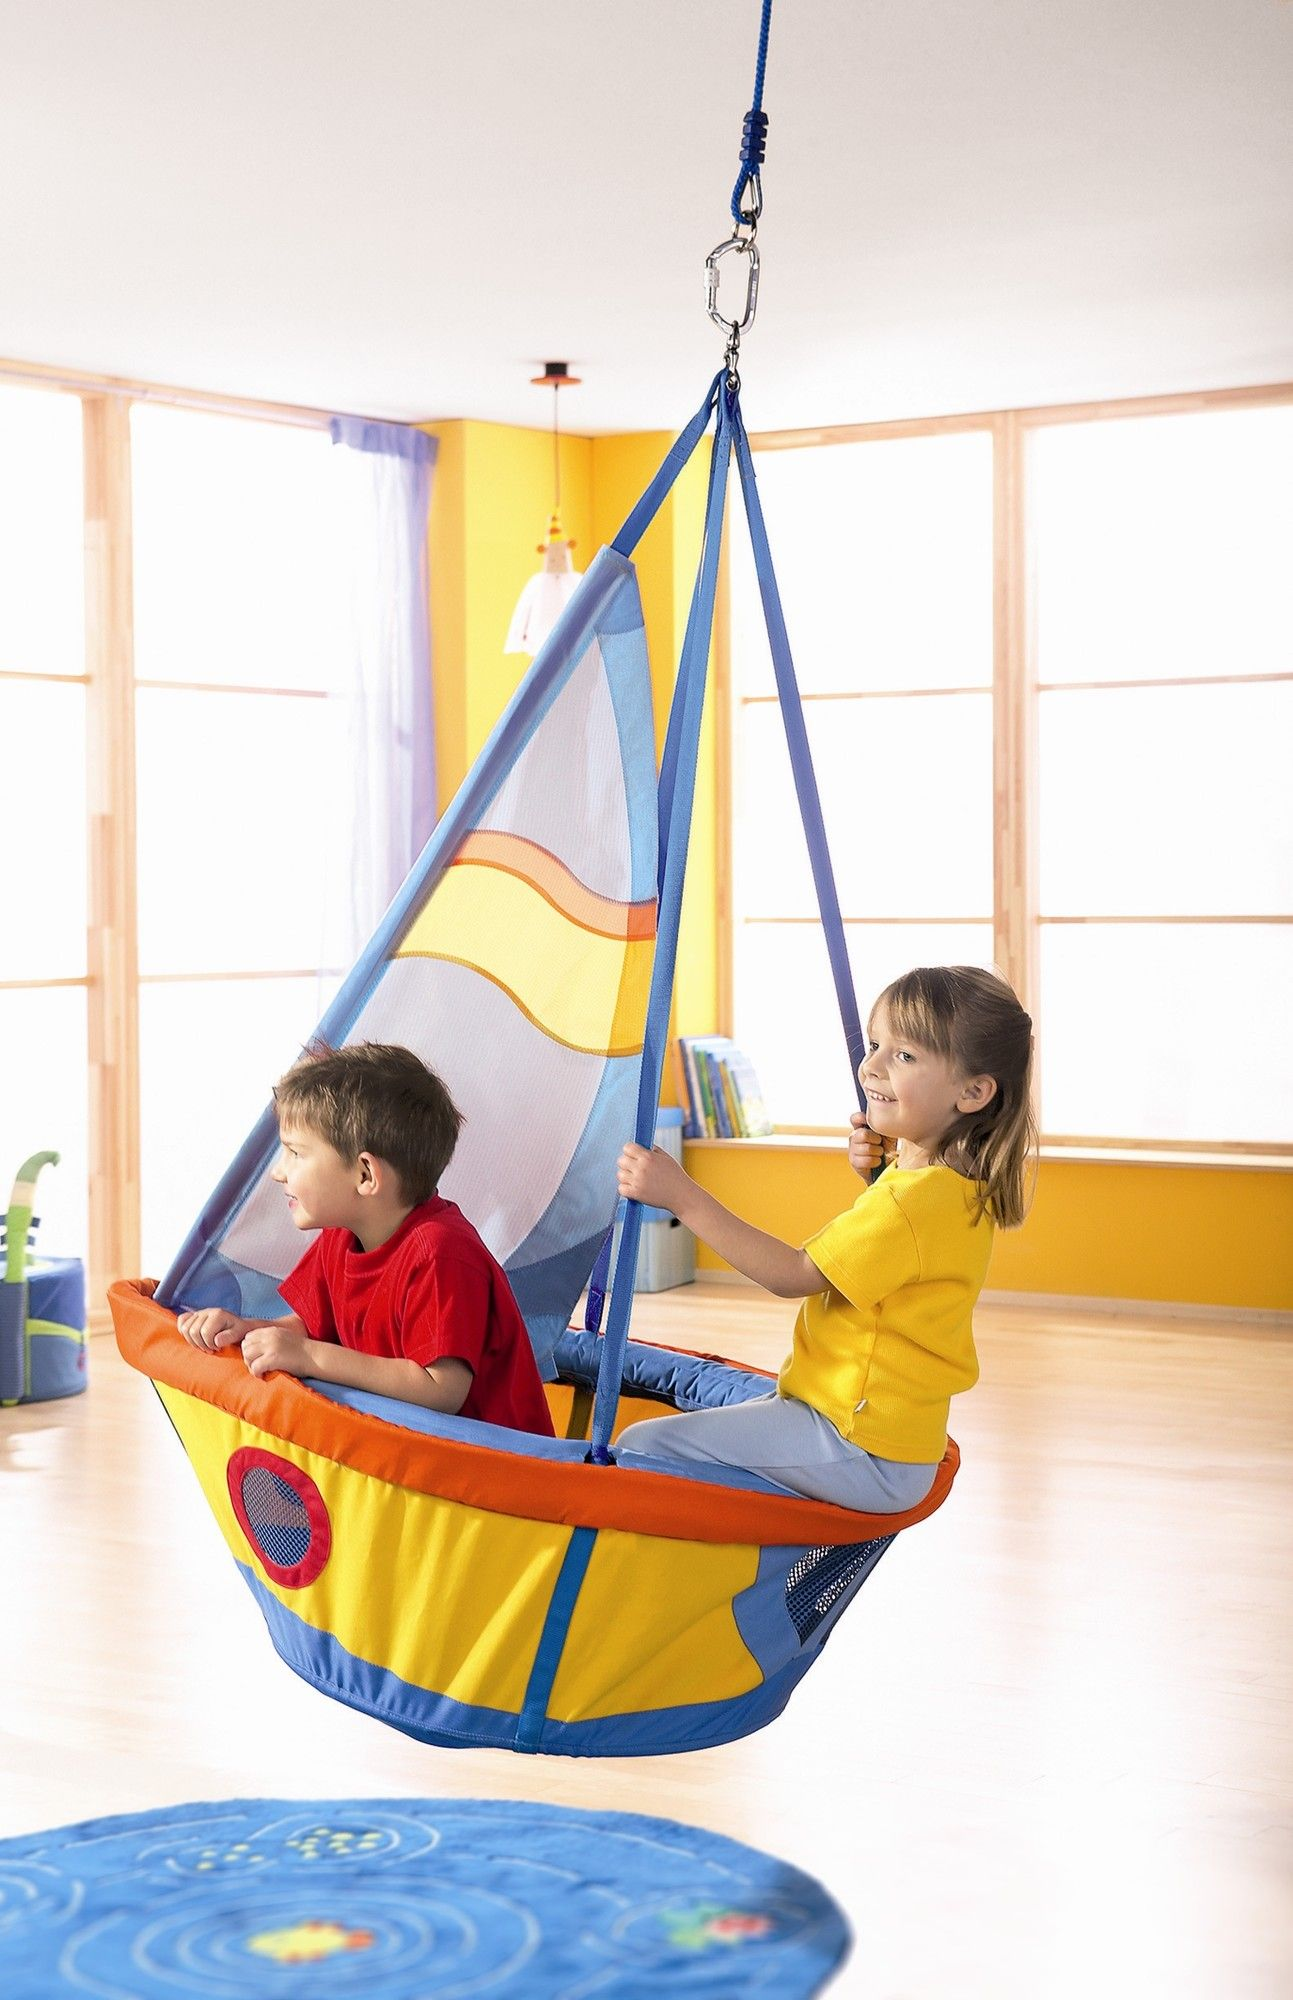 Explore Hanging Chairs, The Boy, and more!